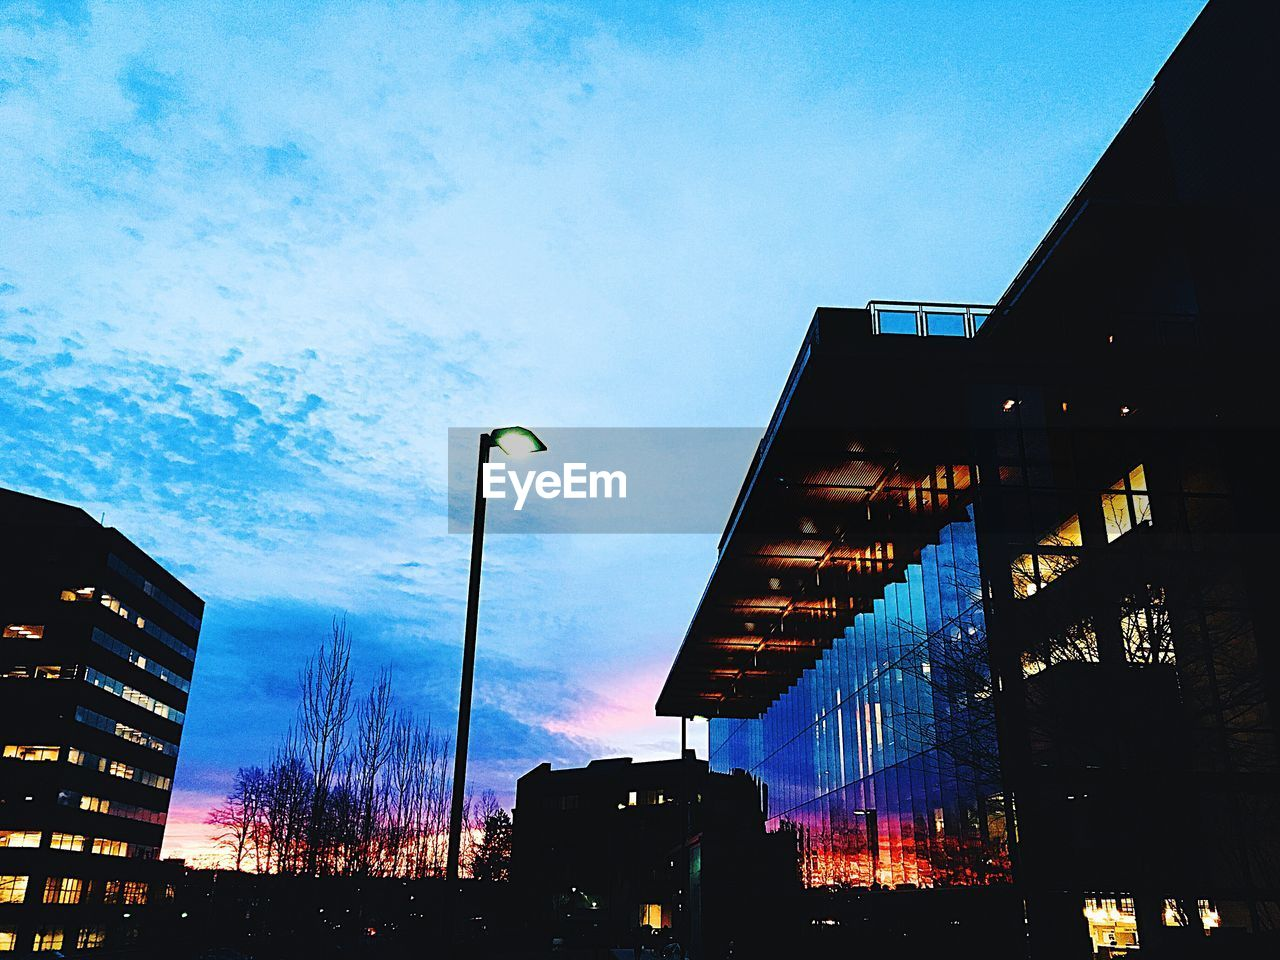 building exterior, sky, architecture, built structure, city, illuminated, low angle view, street light, nature, street, cloud - sky, sign, dusk, no people, lighting equipment, blue, outdoors, tree, building, text, office building exterior, skyscraper